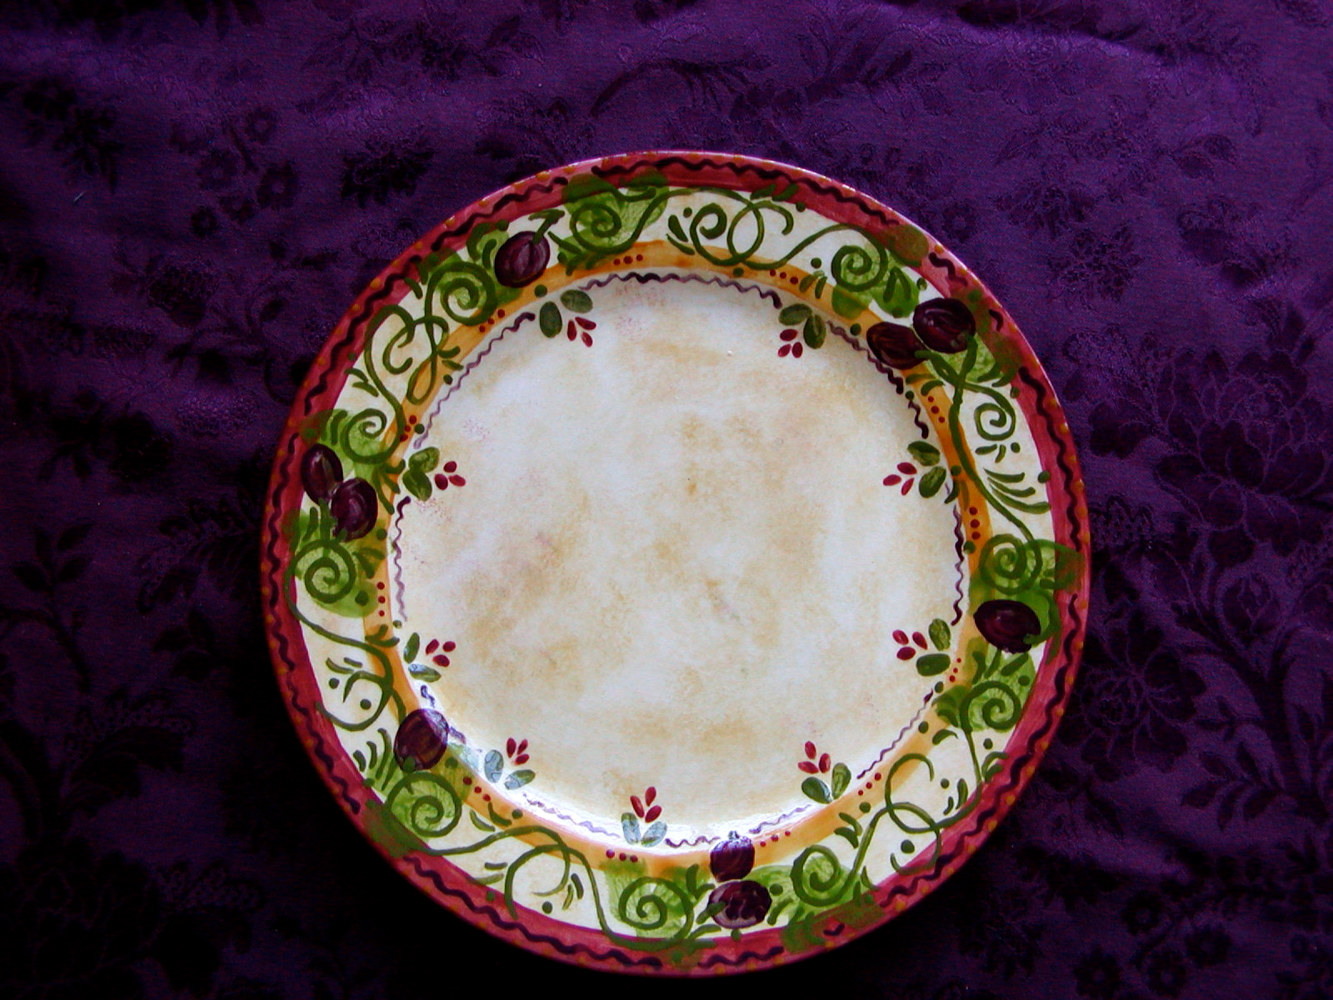 Painting Italianate Eclectic Glazeworks: Dinner Plate Design 2 by Victoria Avila